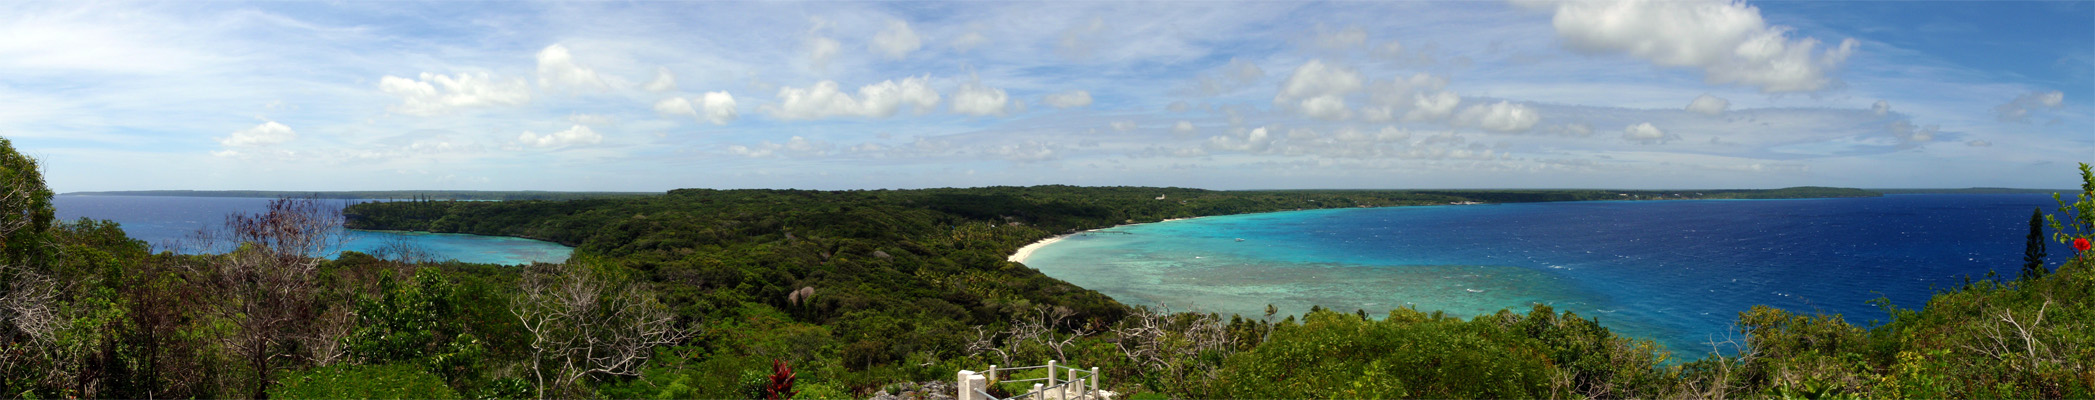 image_nouvelle_caledonie (15)